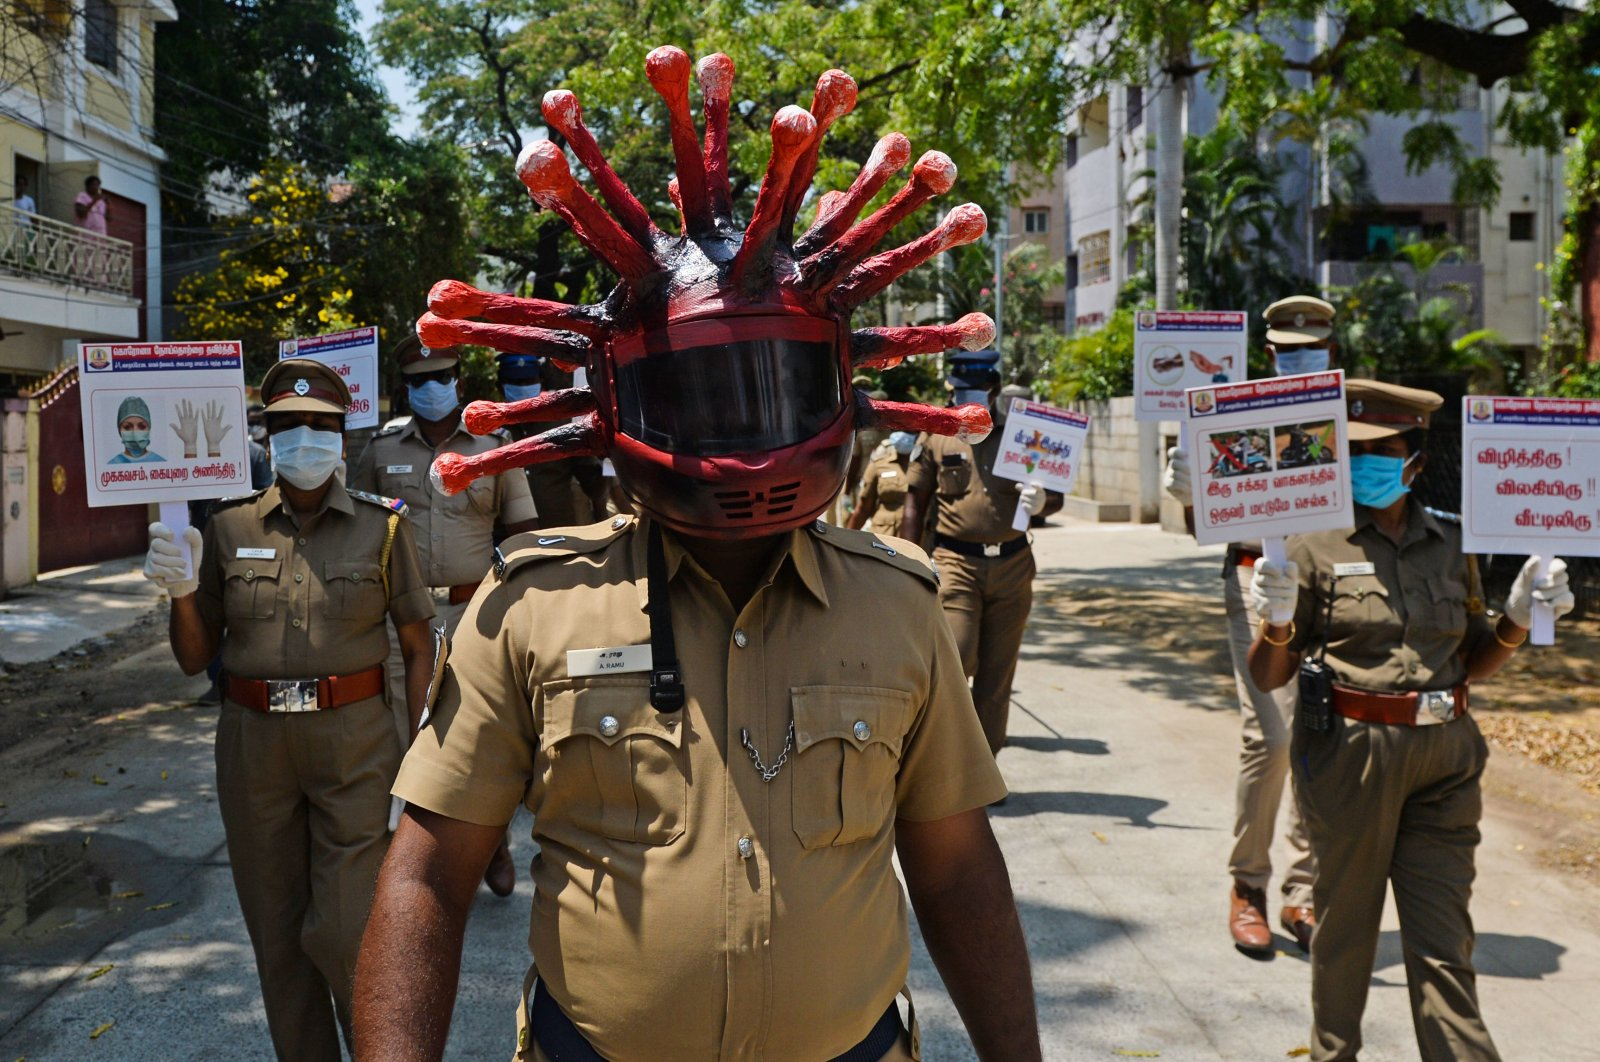 A policeman wearing a coronavirus helmet takes part with others in a procession to raise awareness about the COVID-19 coronavirus during a government-imposed nationwide lockdown, Chennai, Sunday, April 12, 2020. (AFP Photo)